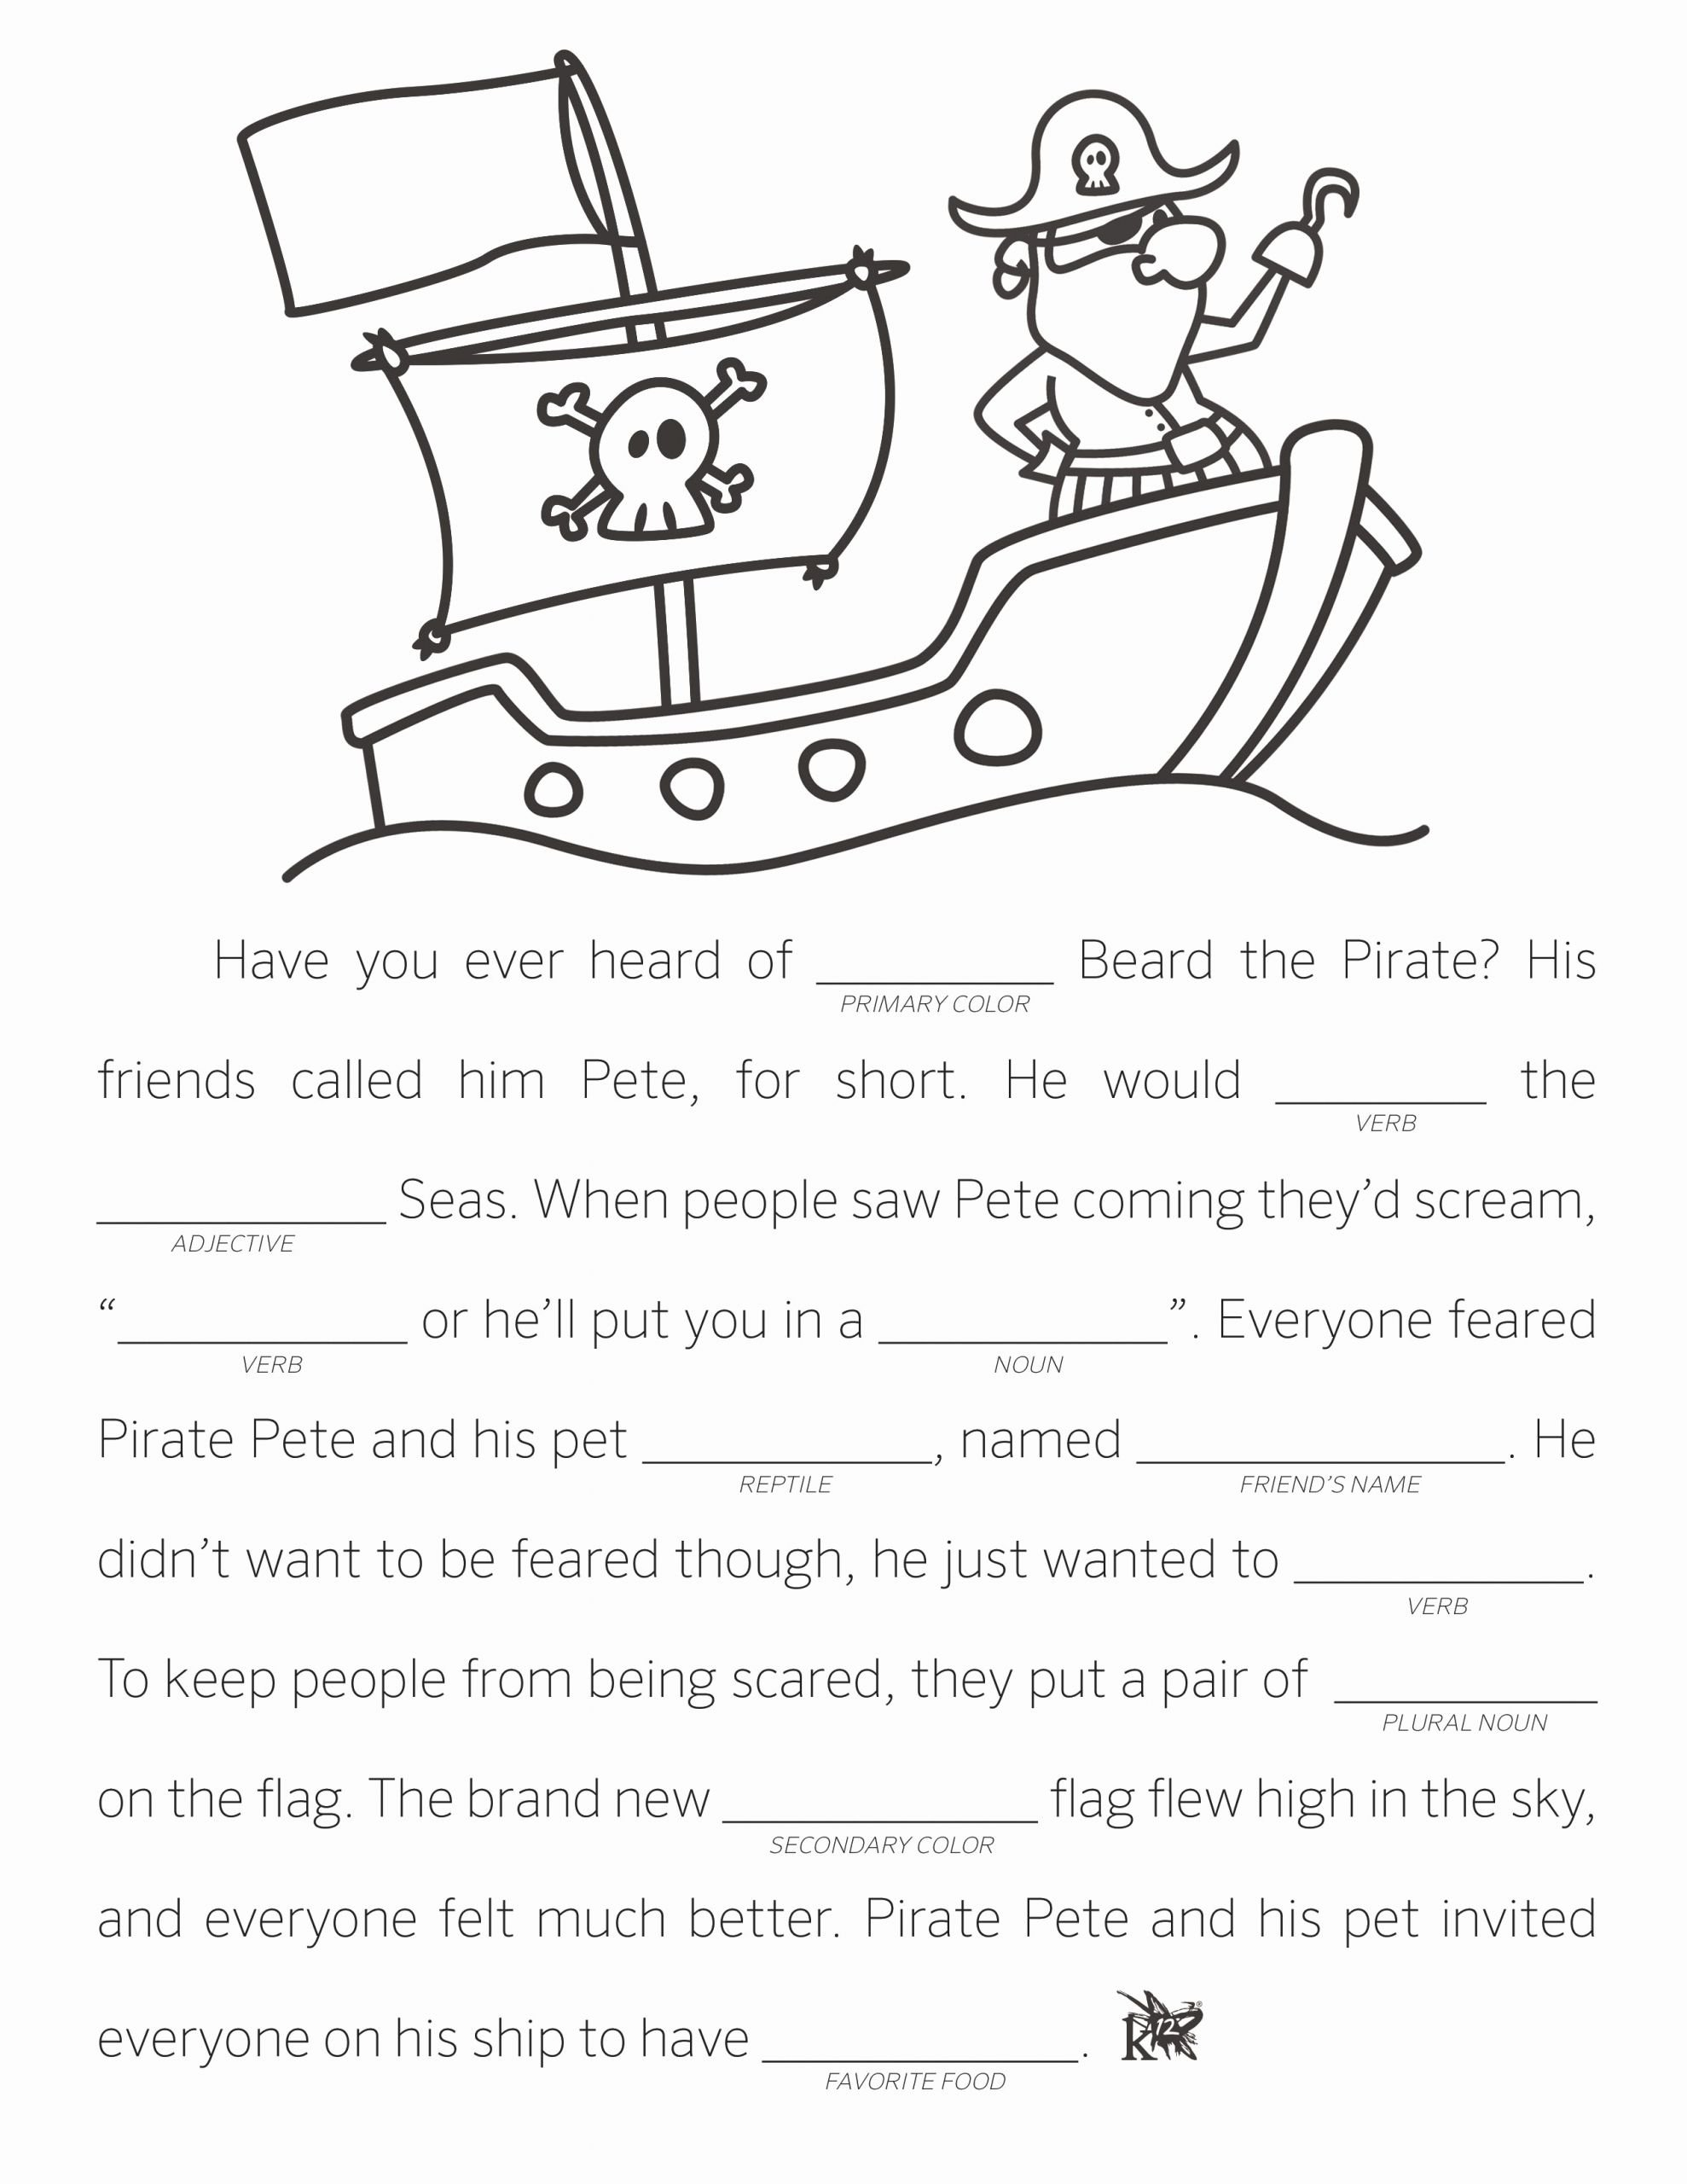 Fill In the Blank Printables Inspirational Make Your Own Fill In the Blank Stories